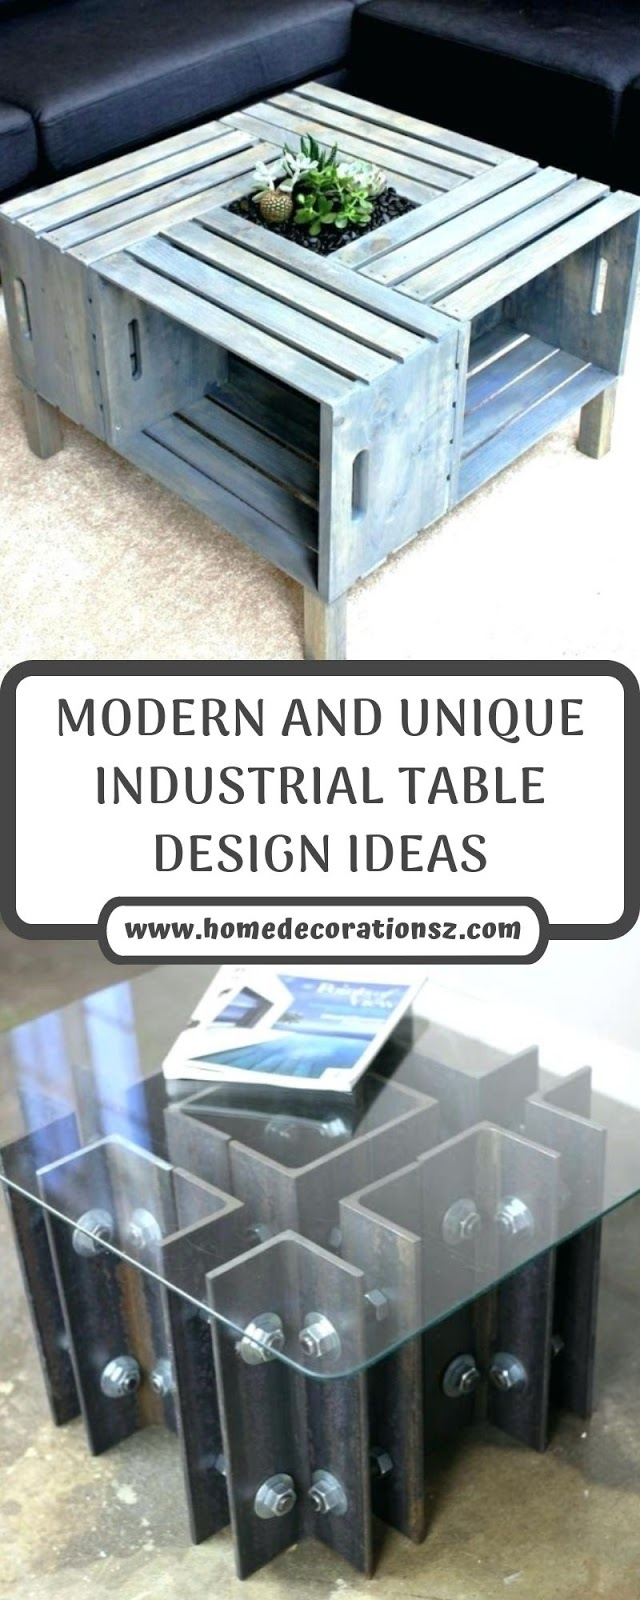 MODERN AND UNIQUE INDUSTRIAL TABLE DESIGN IDEAS